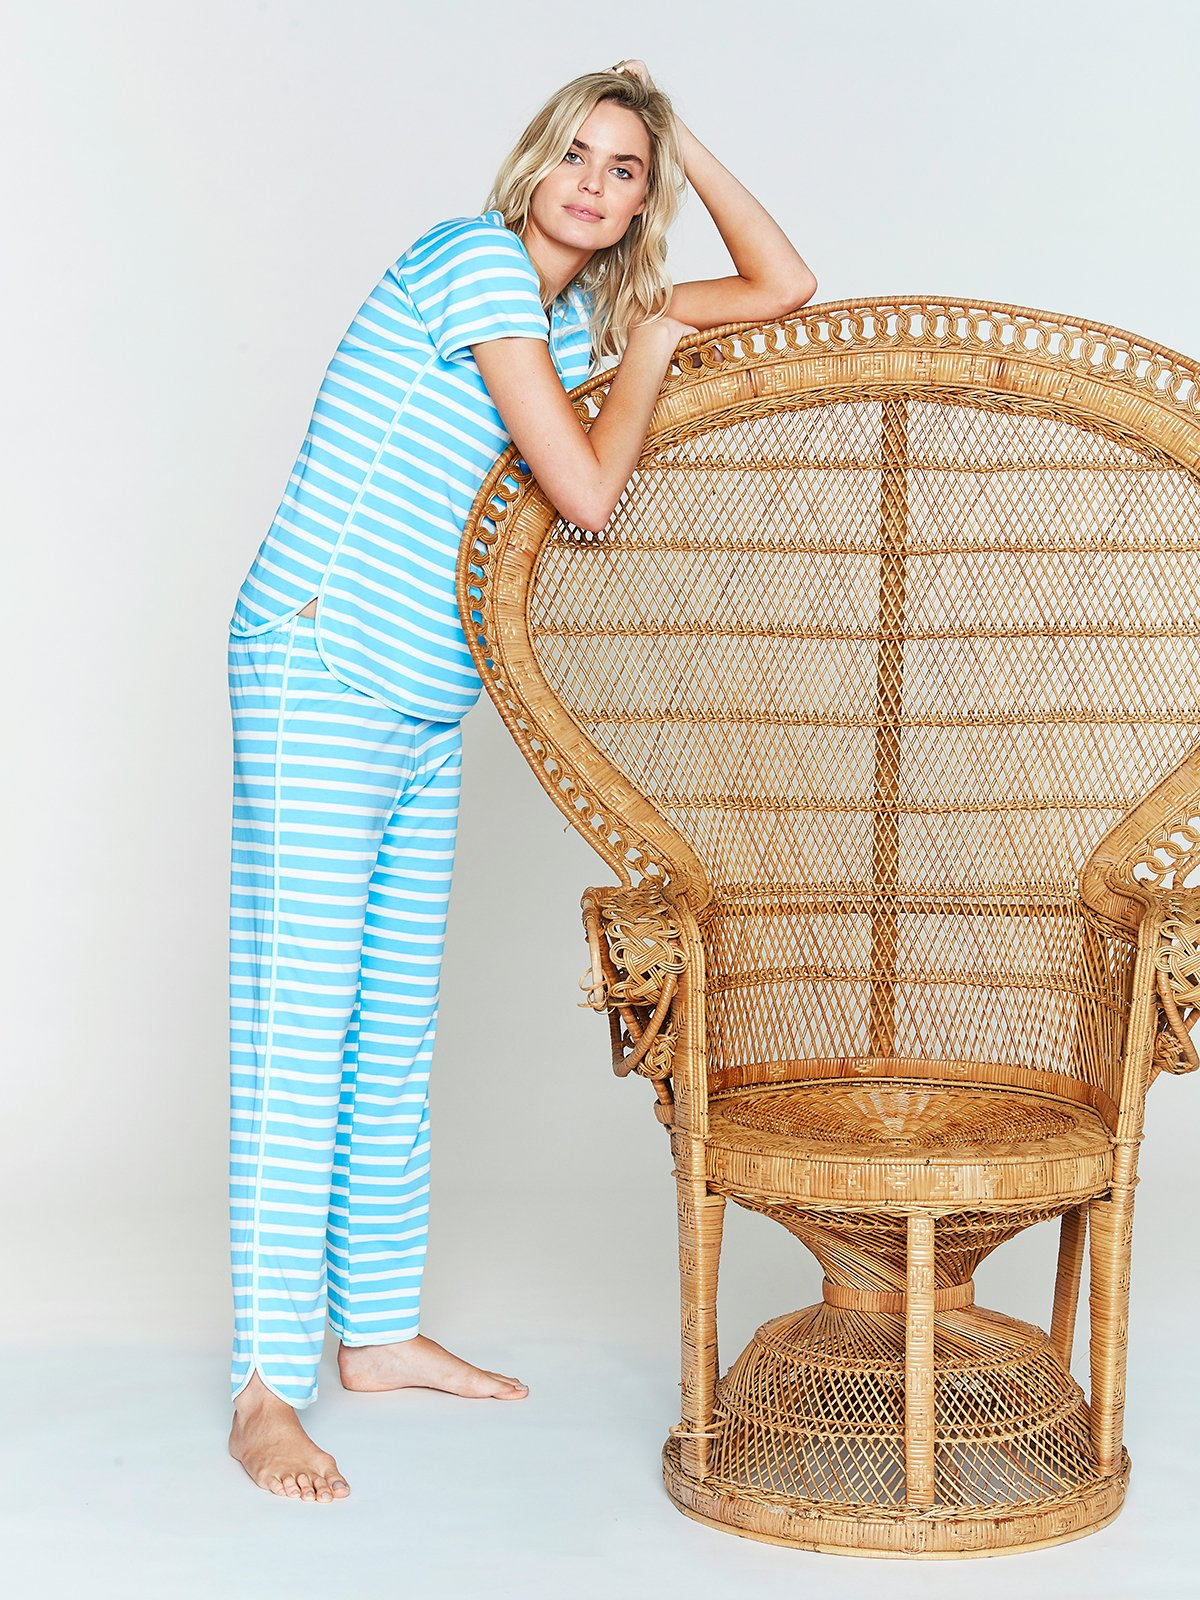 Blue and White Stripe Cotton Pajama Pants and Top by Lake Pajamas